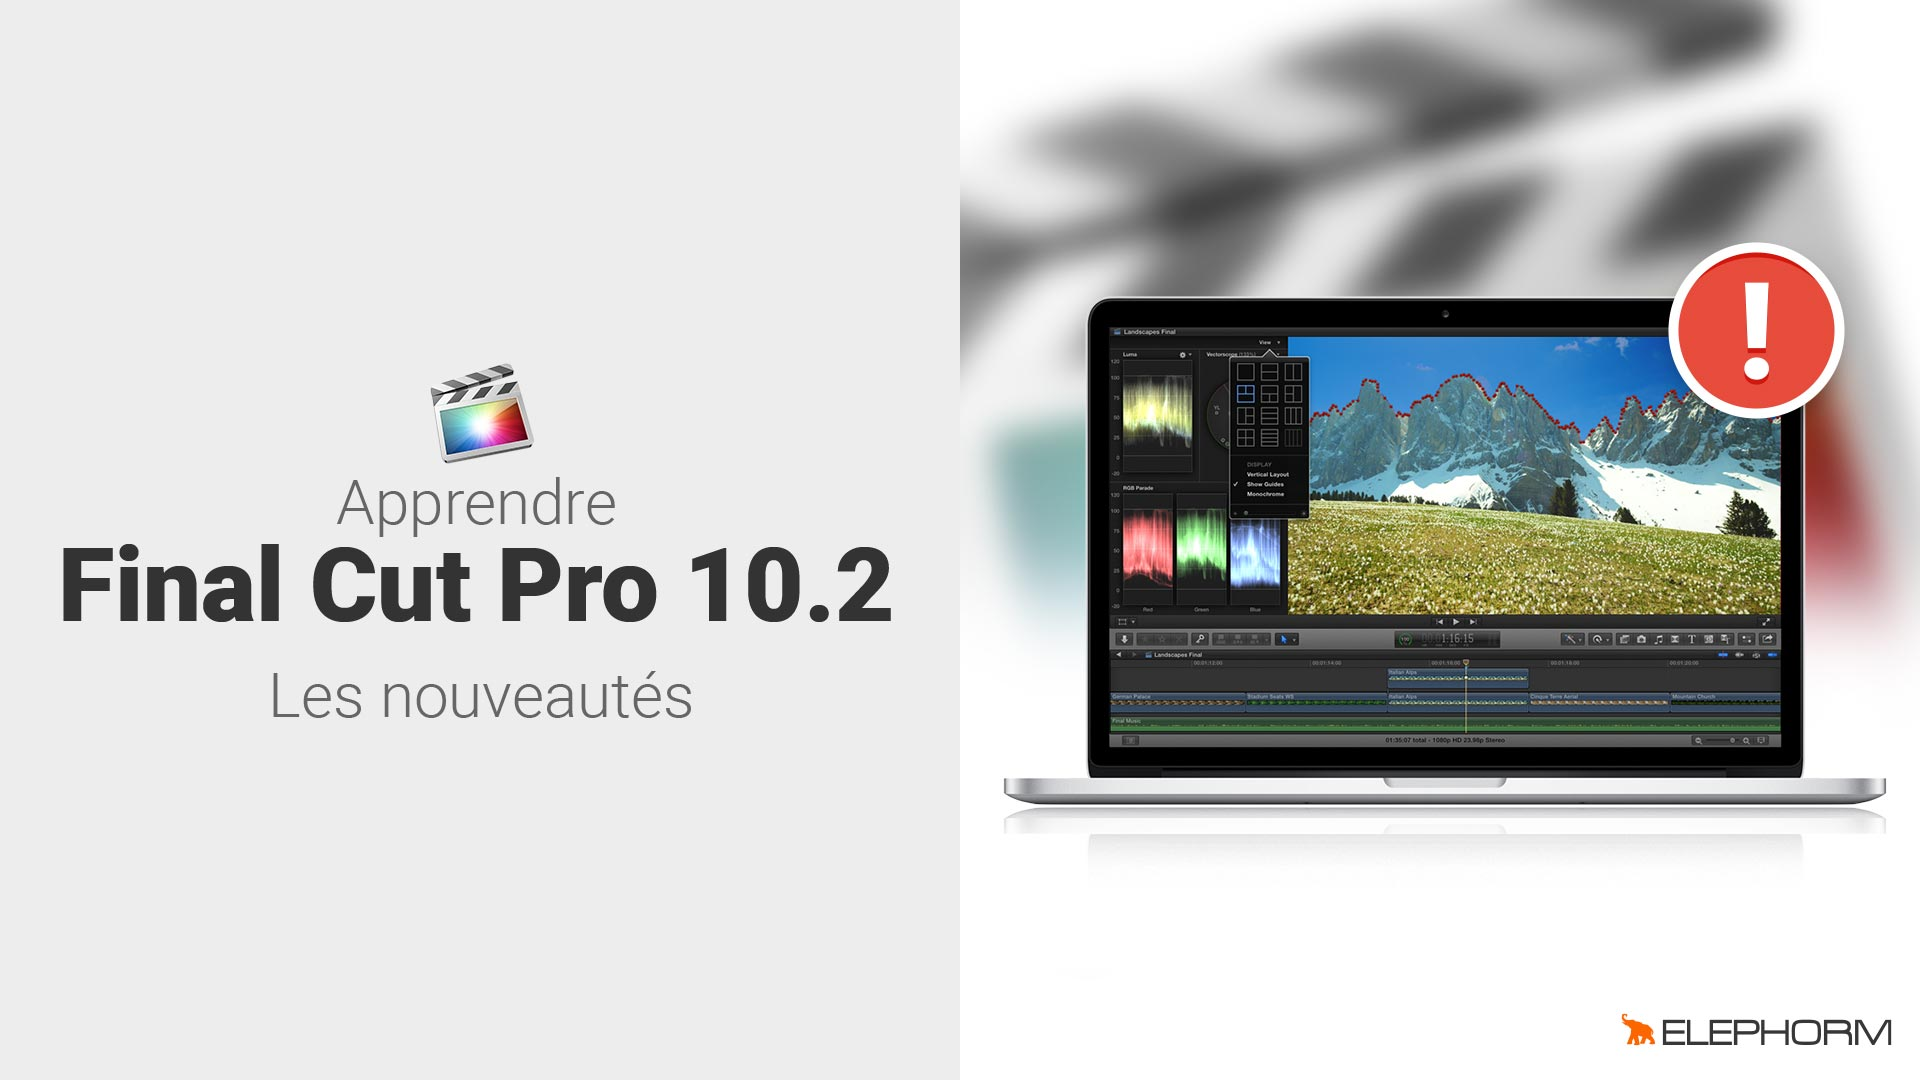 Apprendre Final Cut Pro 10.2